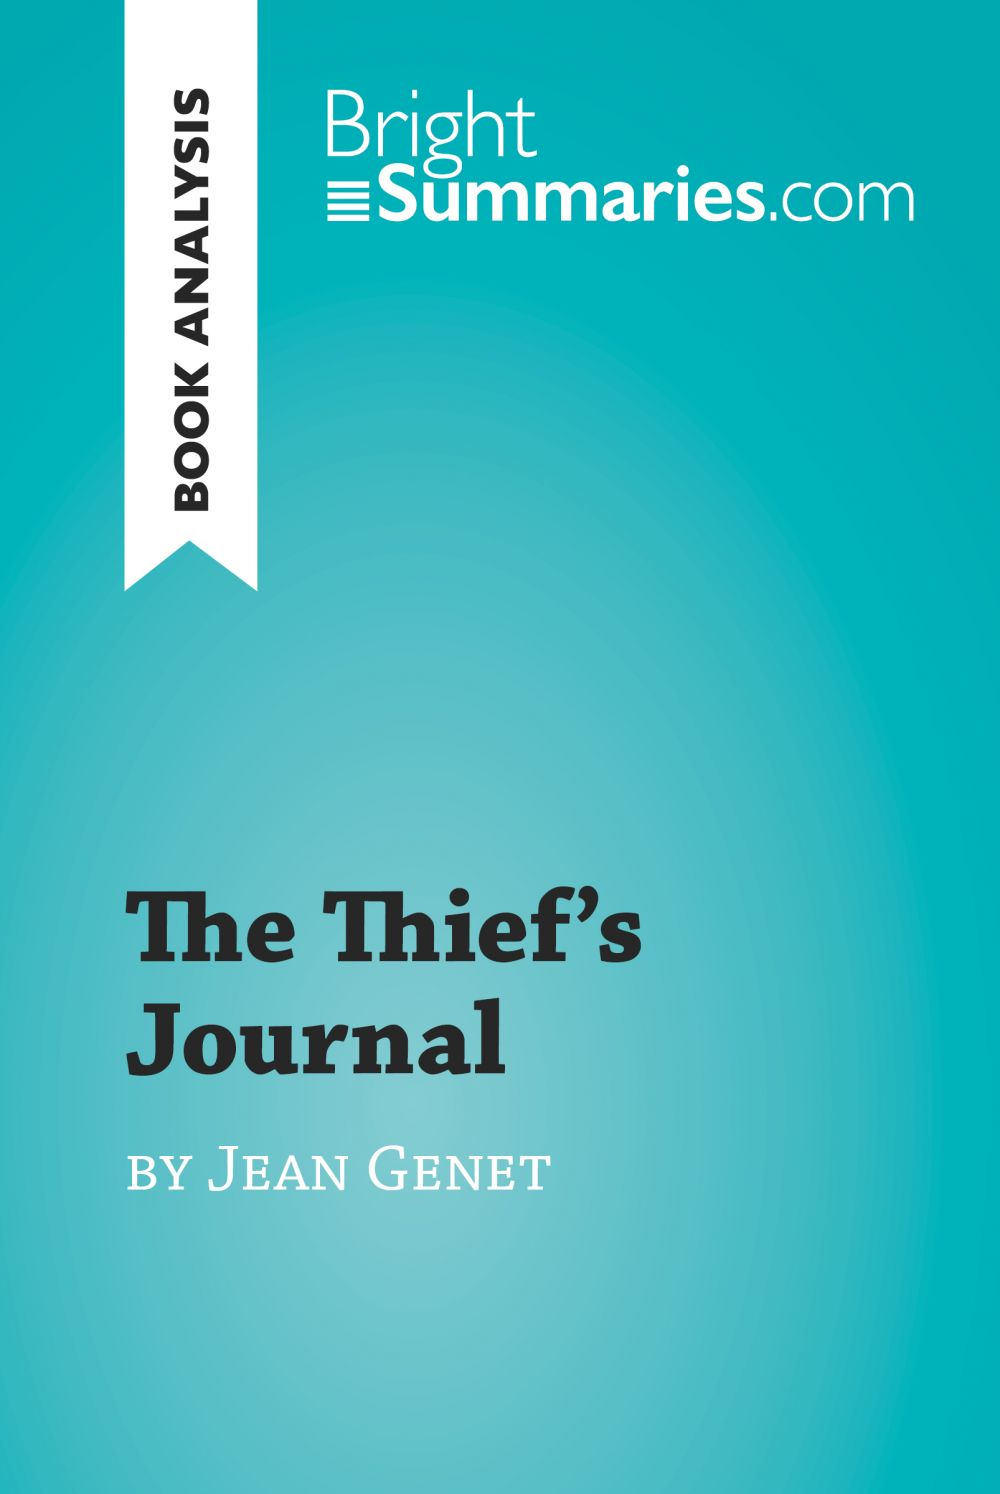 The Thief's Journal by Jean Genet (Book Analysis)